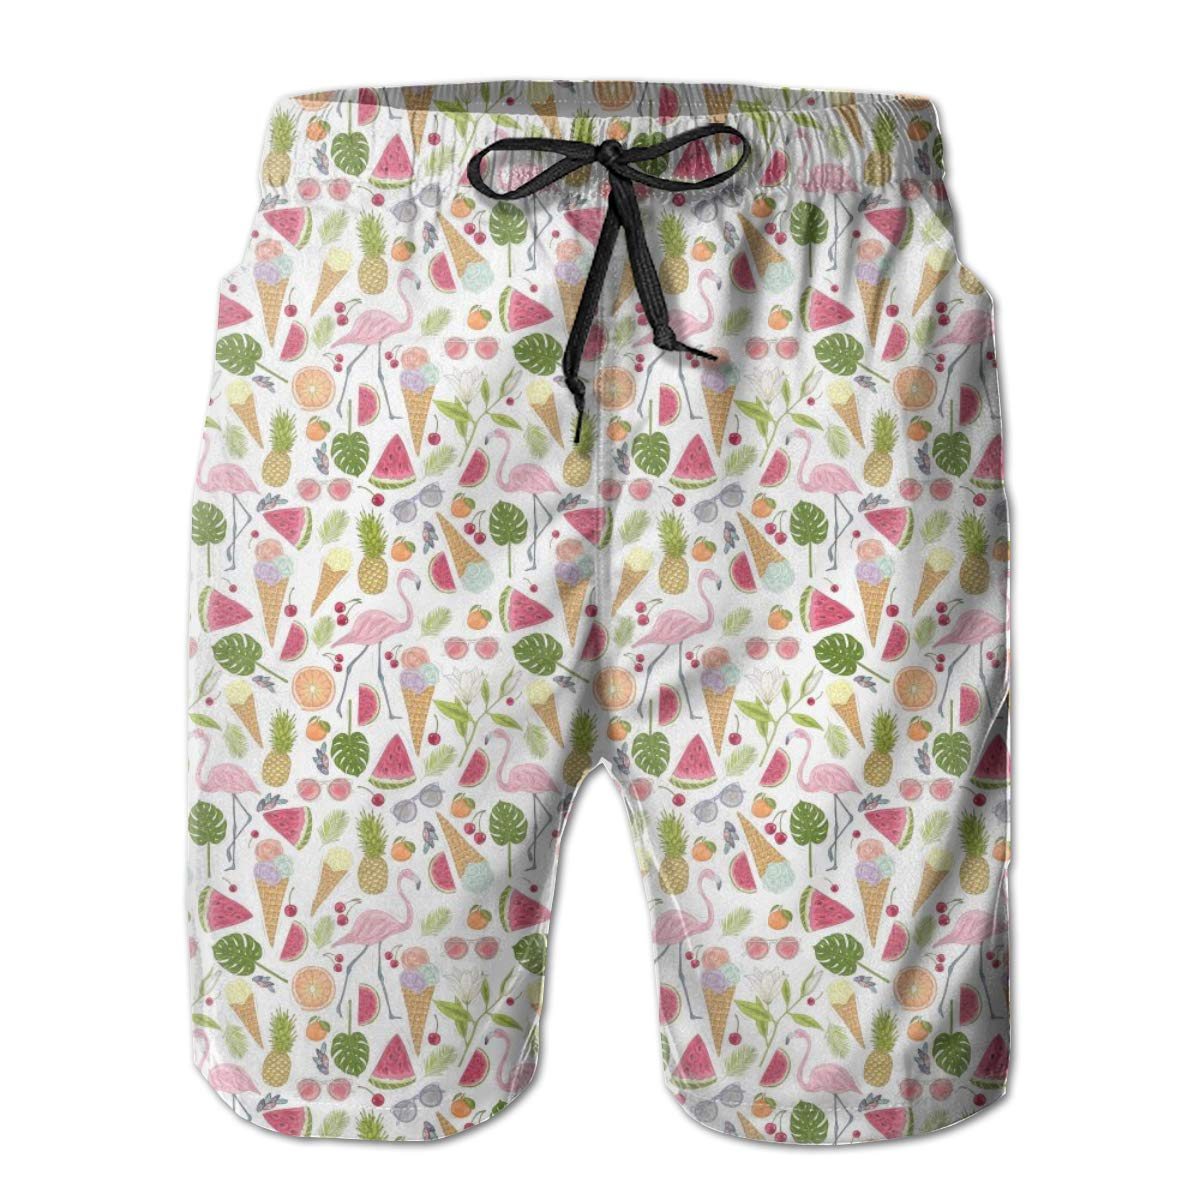 HZamora/_H Men Summer and Flamingo Summer Breathable Quick-Drying Swim Trunks Beach Shorts Board Shorts